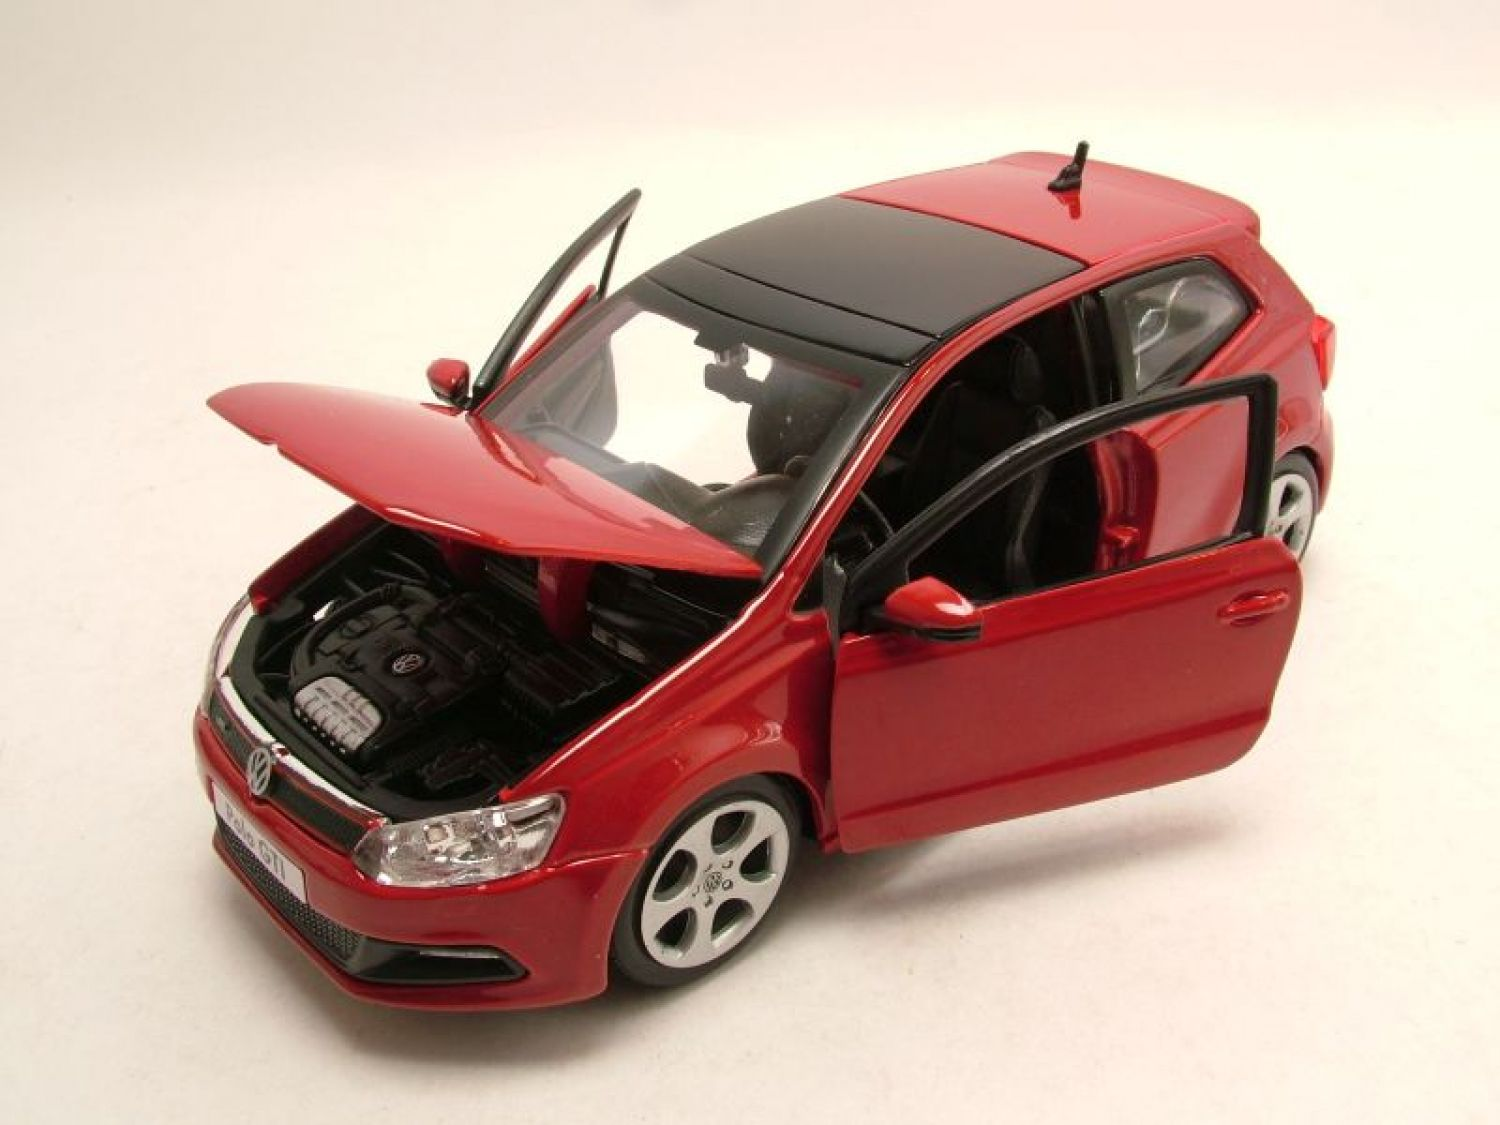 vw polo 5 gti 2014 rot modellauto 1 24 burago ebay. Black Bedroom Furniture Sets. Home Design Ideas